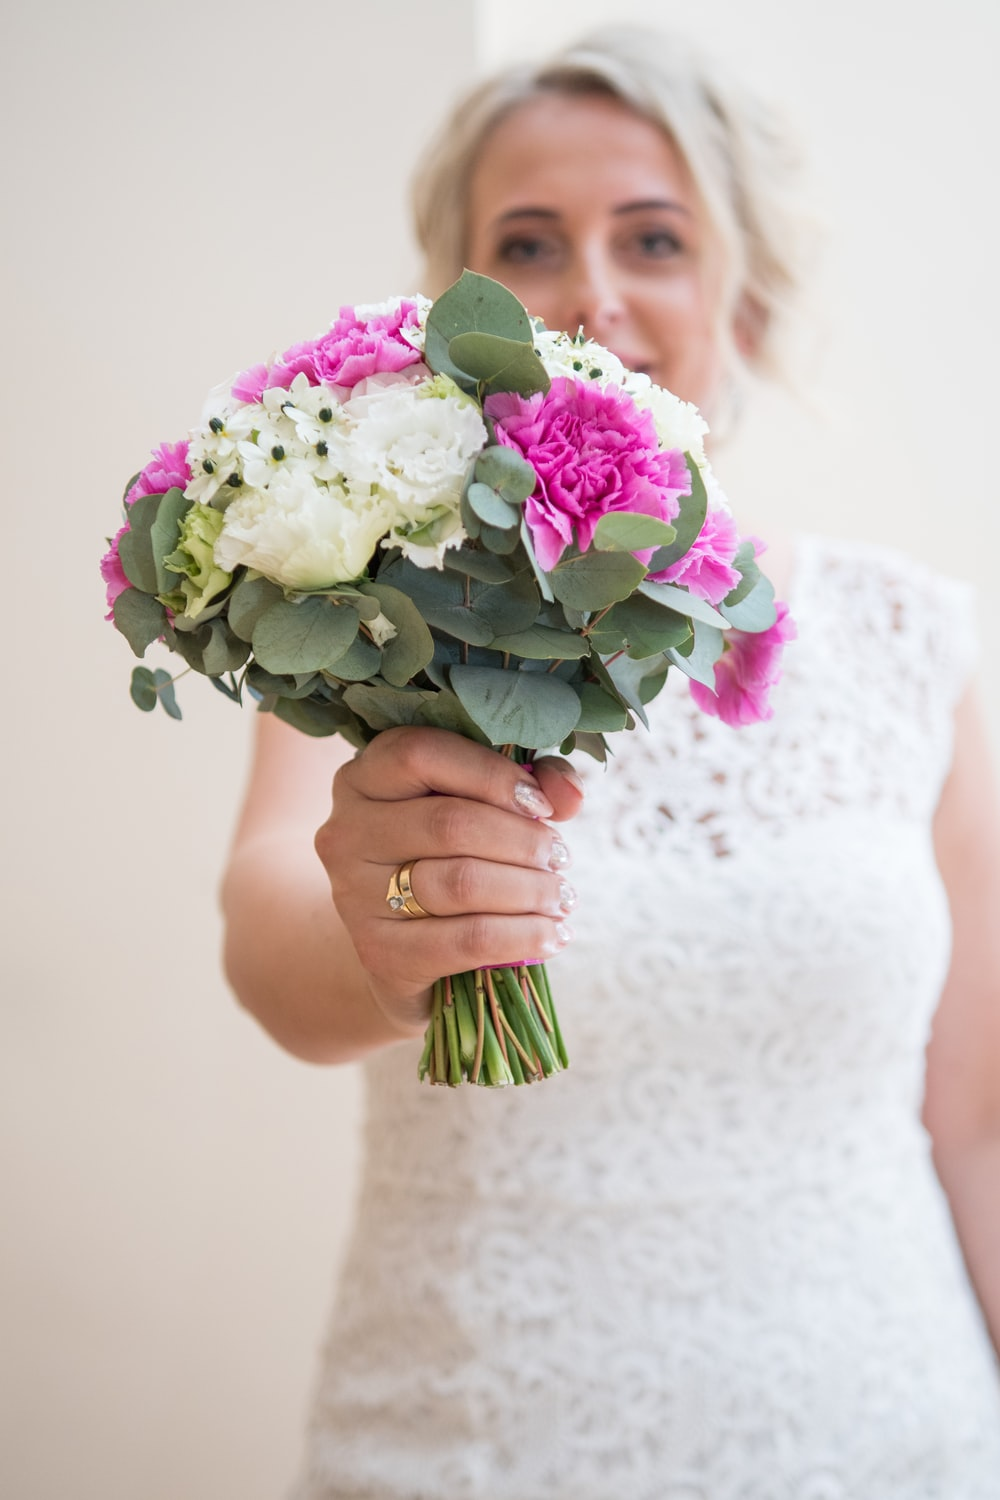 woman holding white and pink bouquet